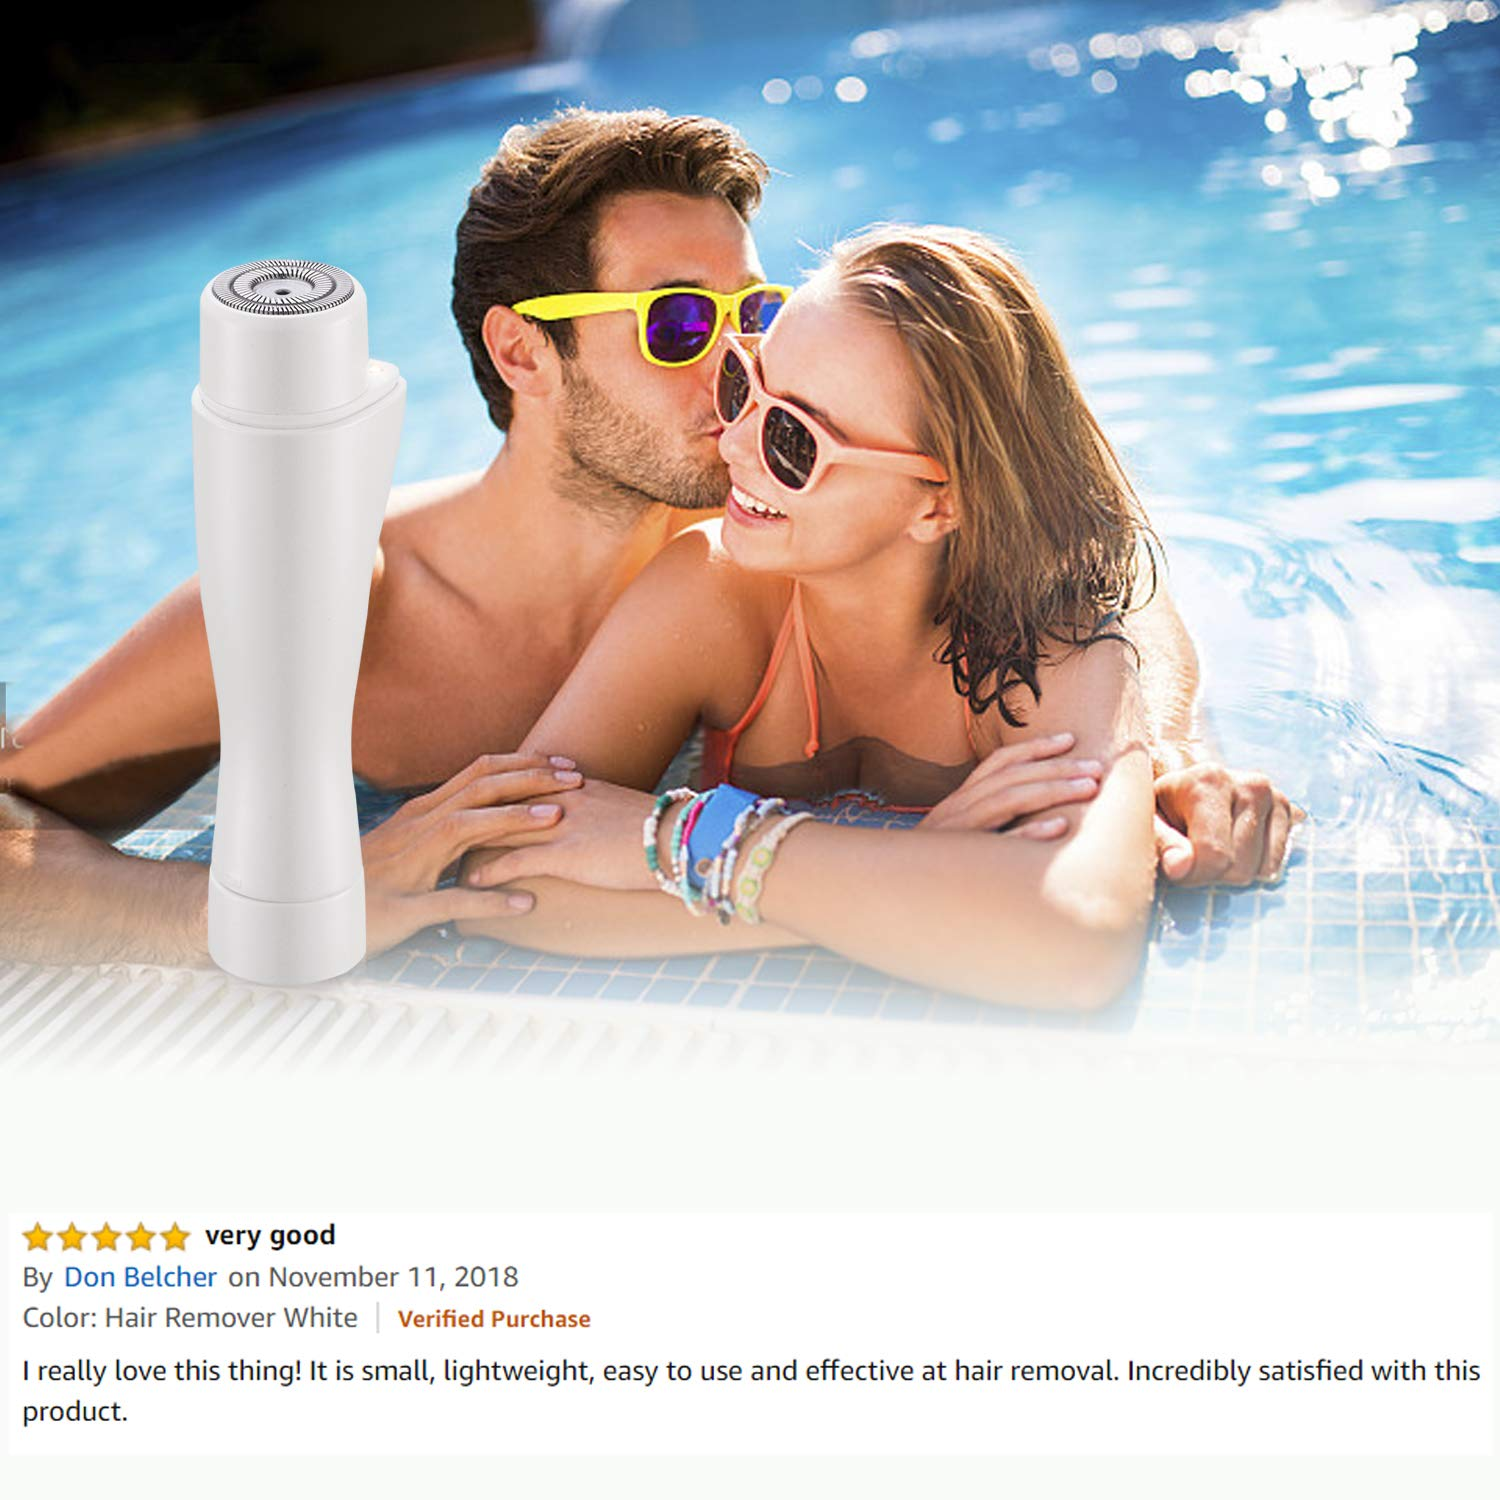 Tobeape Facial Hair Removal for Women, Waterproof Electric Painless Hair Remover Trimmer for Face Facial Armpit Upper Lip Chin Bikini Line Area Arm Leg, Built-in LED Light